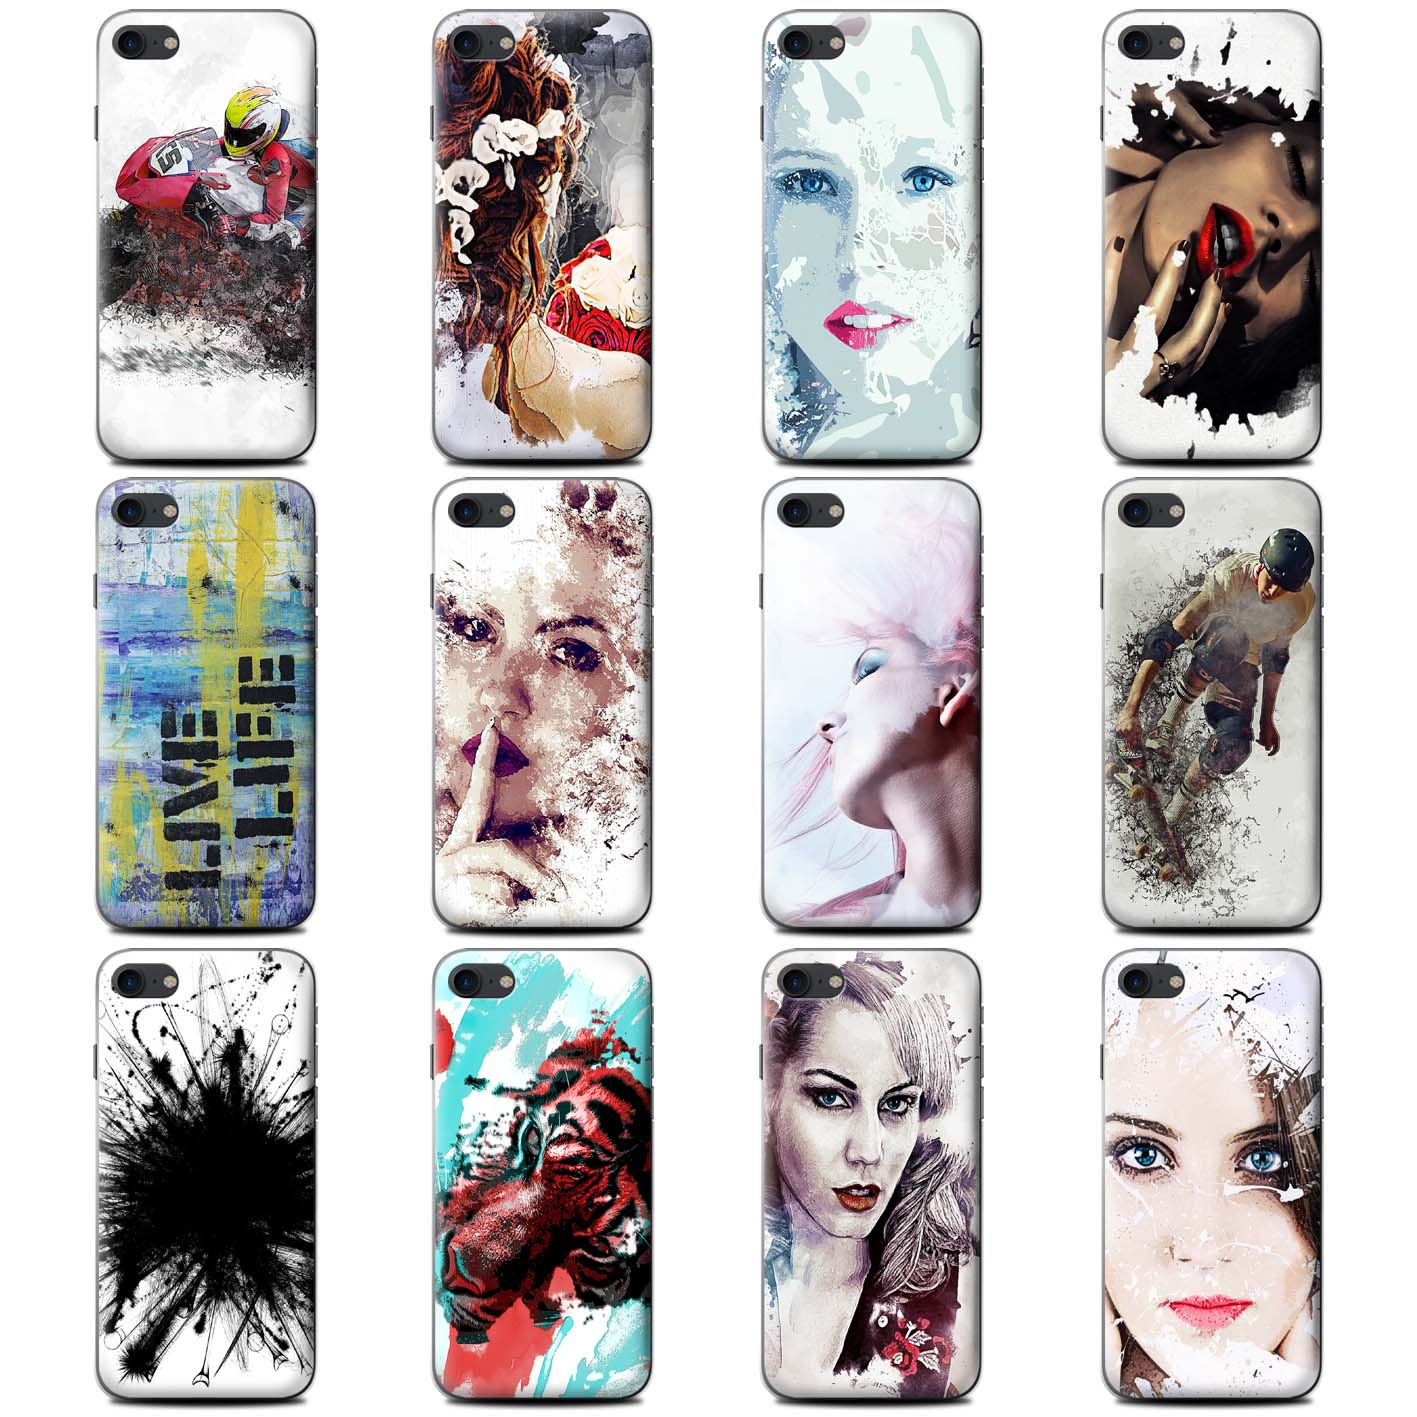 STUFF4-Coque-Etui-Gel-TPU-pour-LG-G-Smartphone-Fragments-Protection-Housse